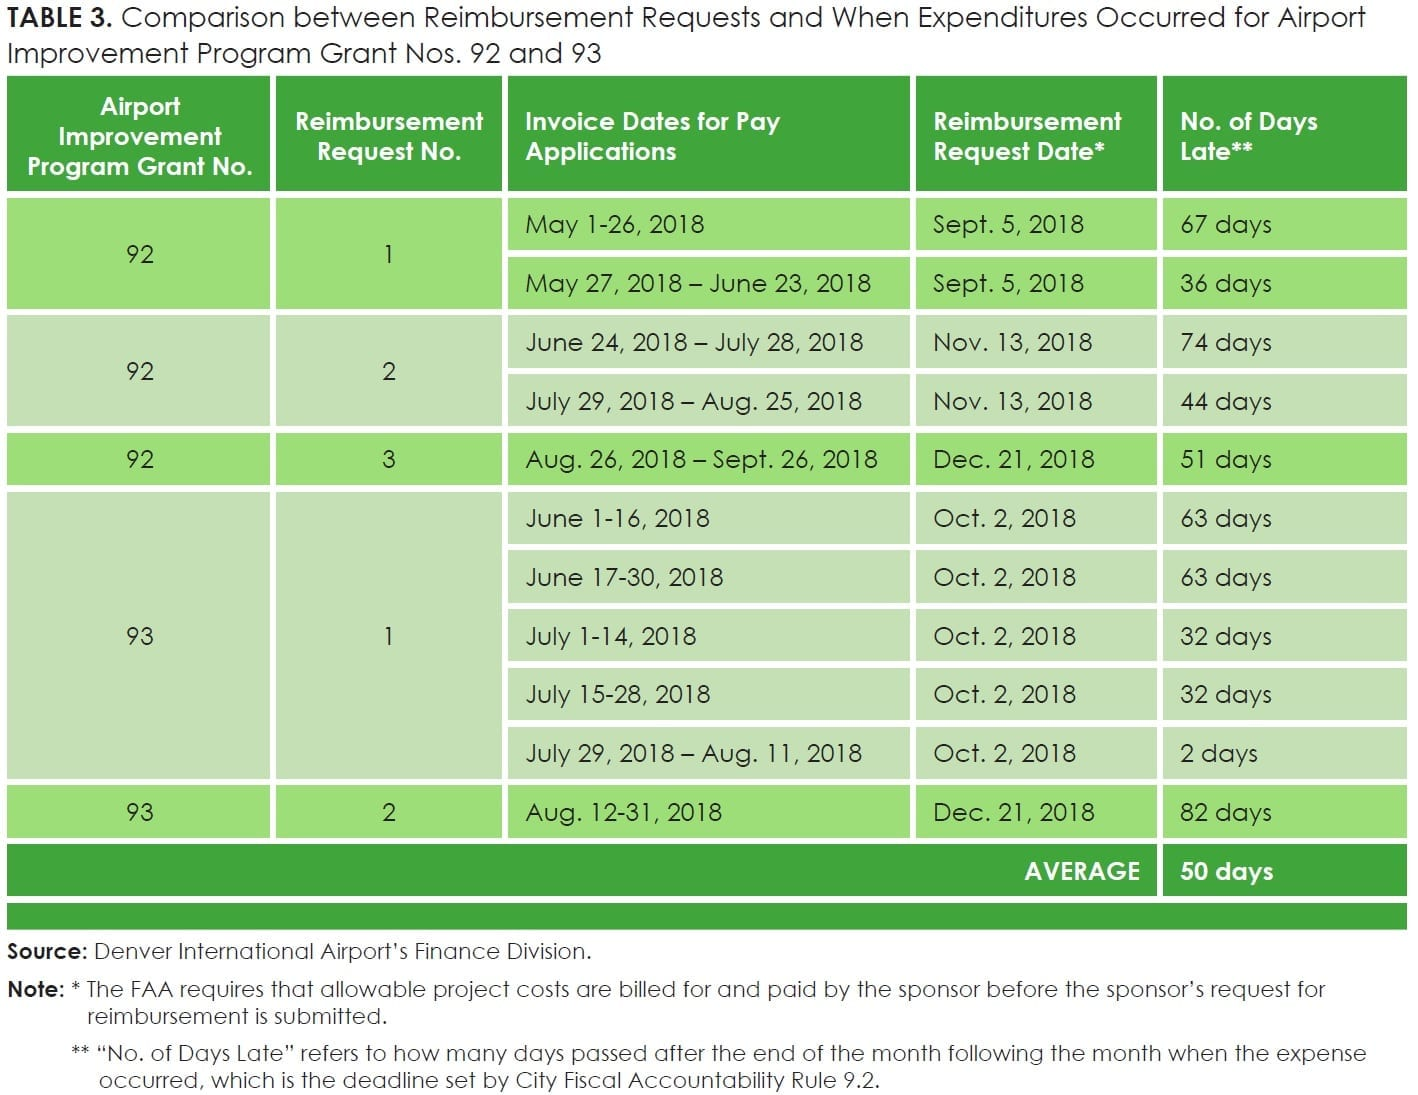 TABLE 3. Comparison between Reimbursement Requests and When Expenditures Occurred for Airport Improvement Program Grant Nos. 92 and 93